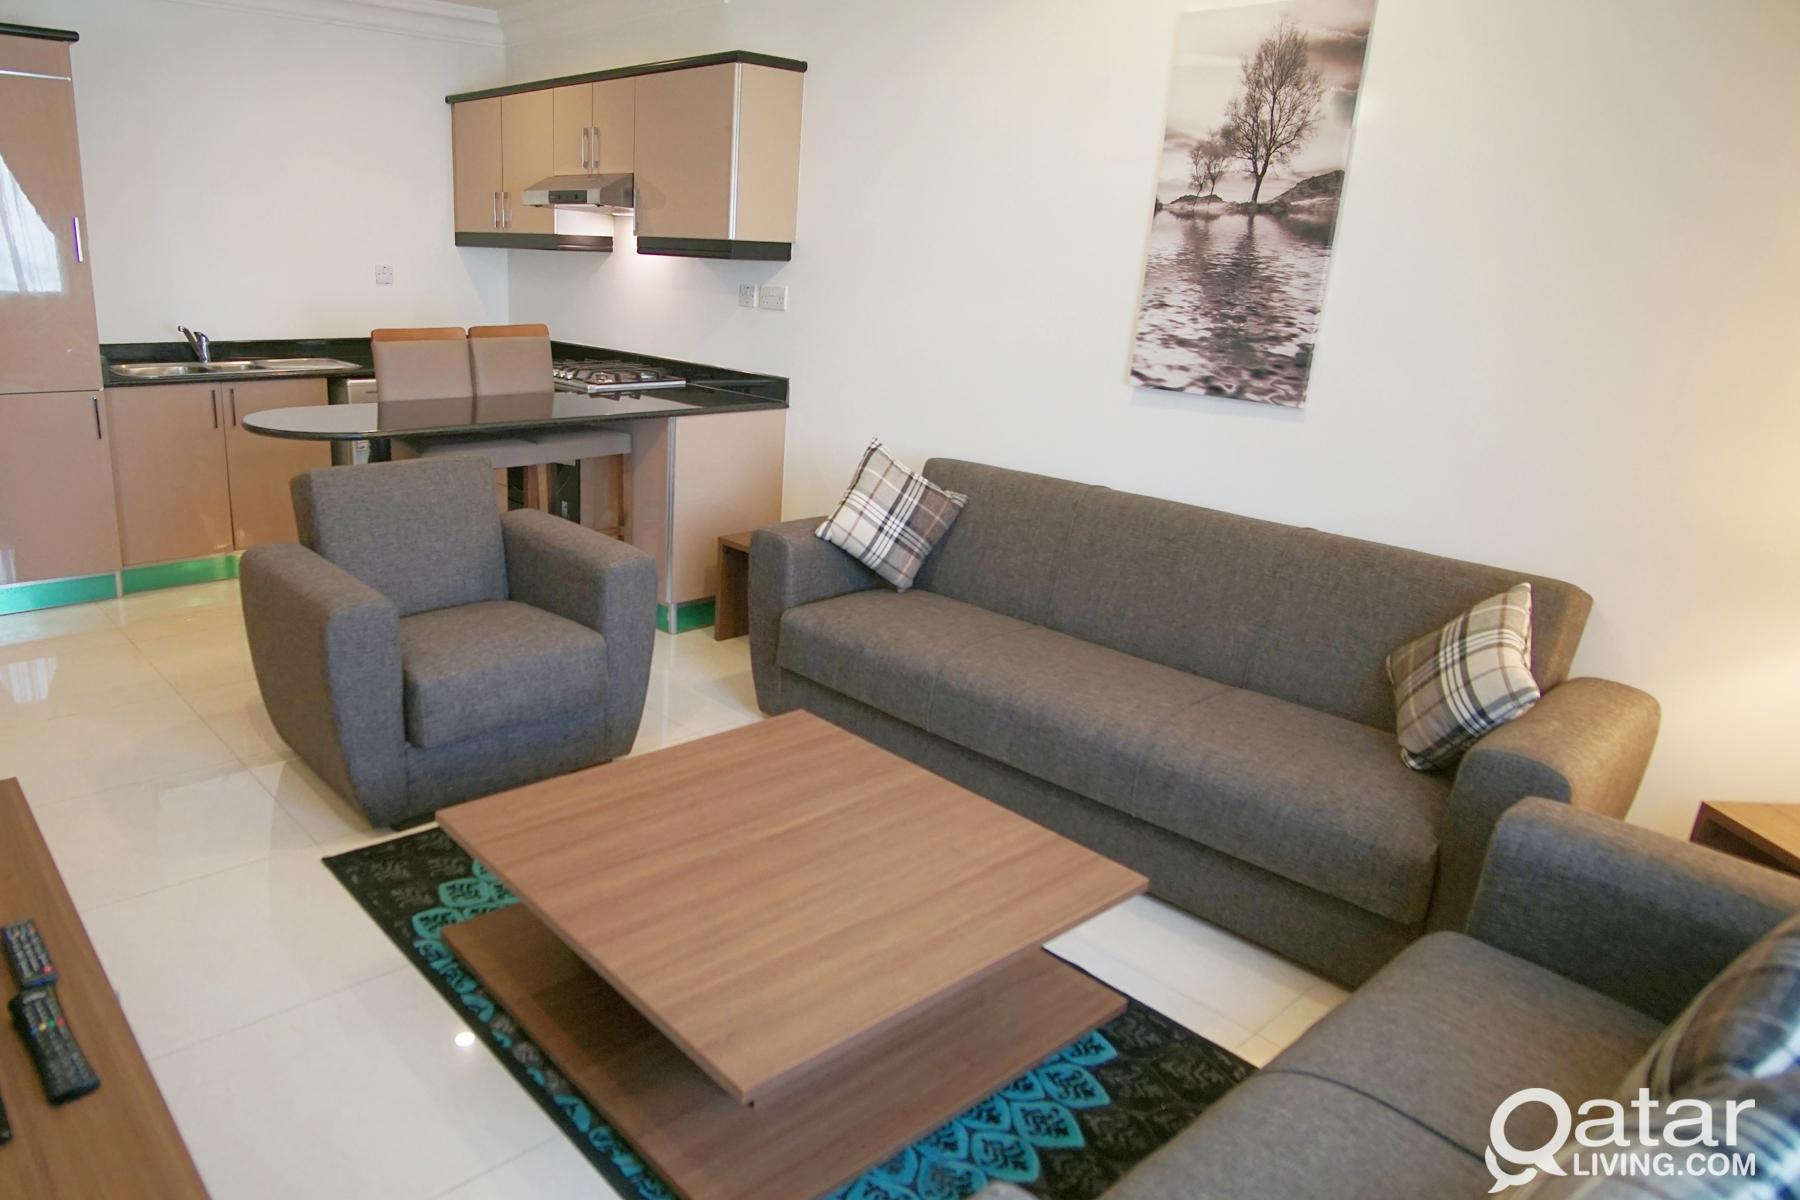 FF 1BHK (including utilities) - NO Commission!